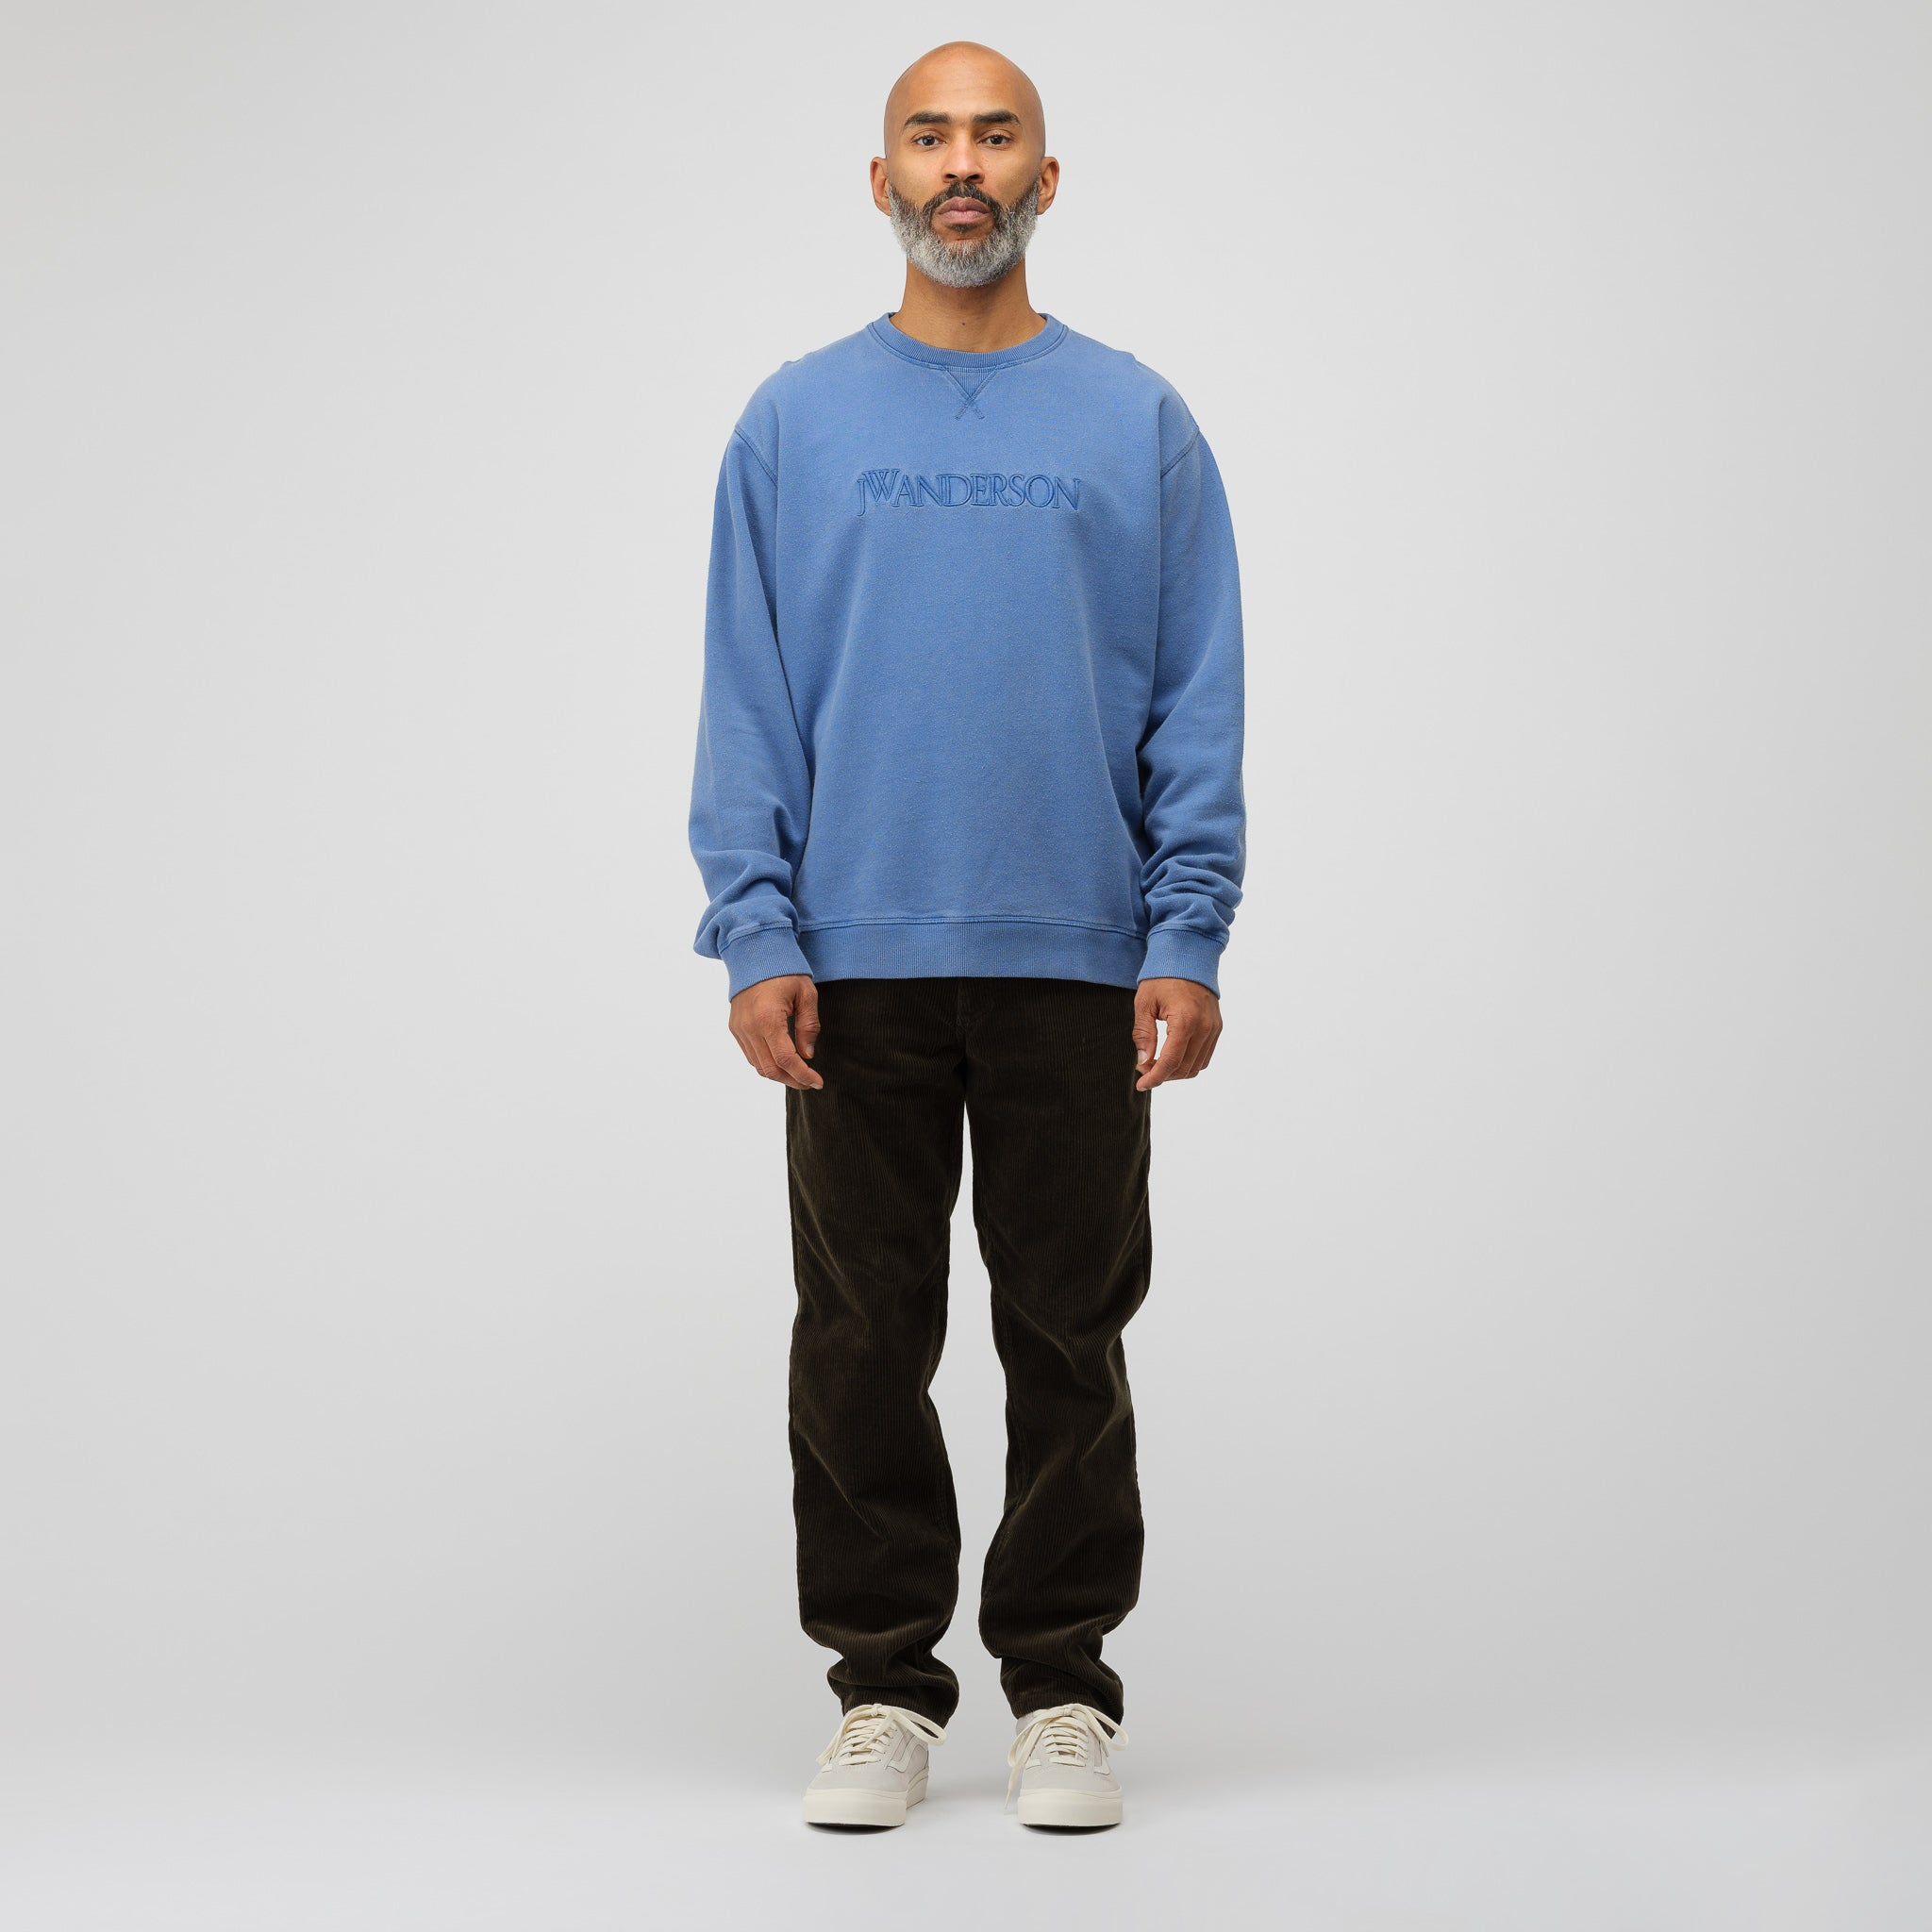 JWA Logo Embroidery Sweatshirt in China Blue